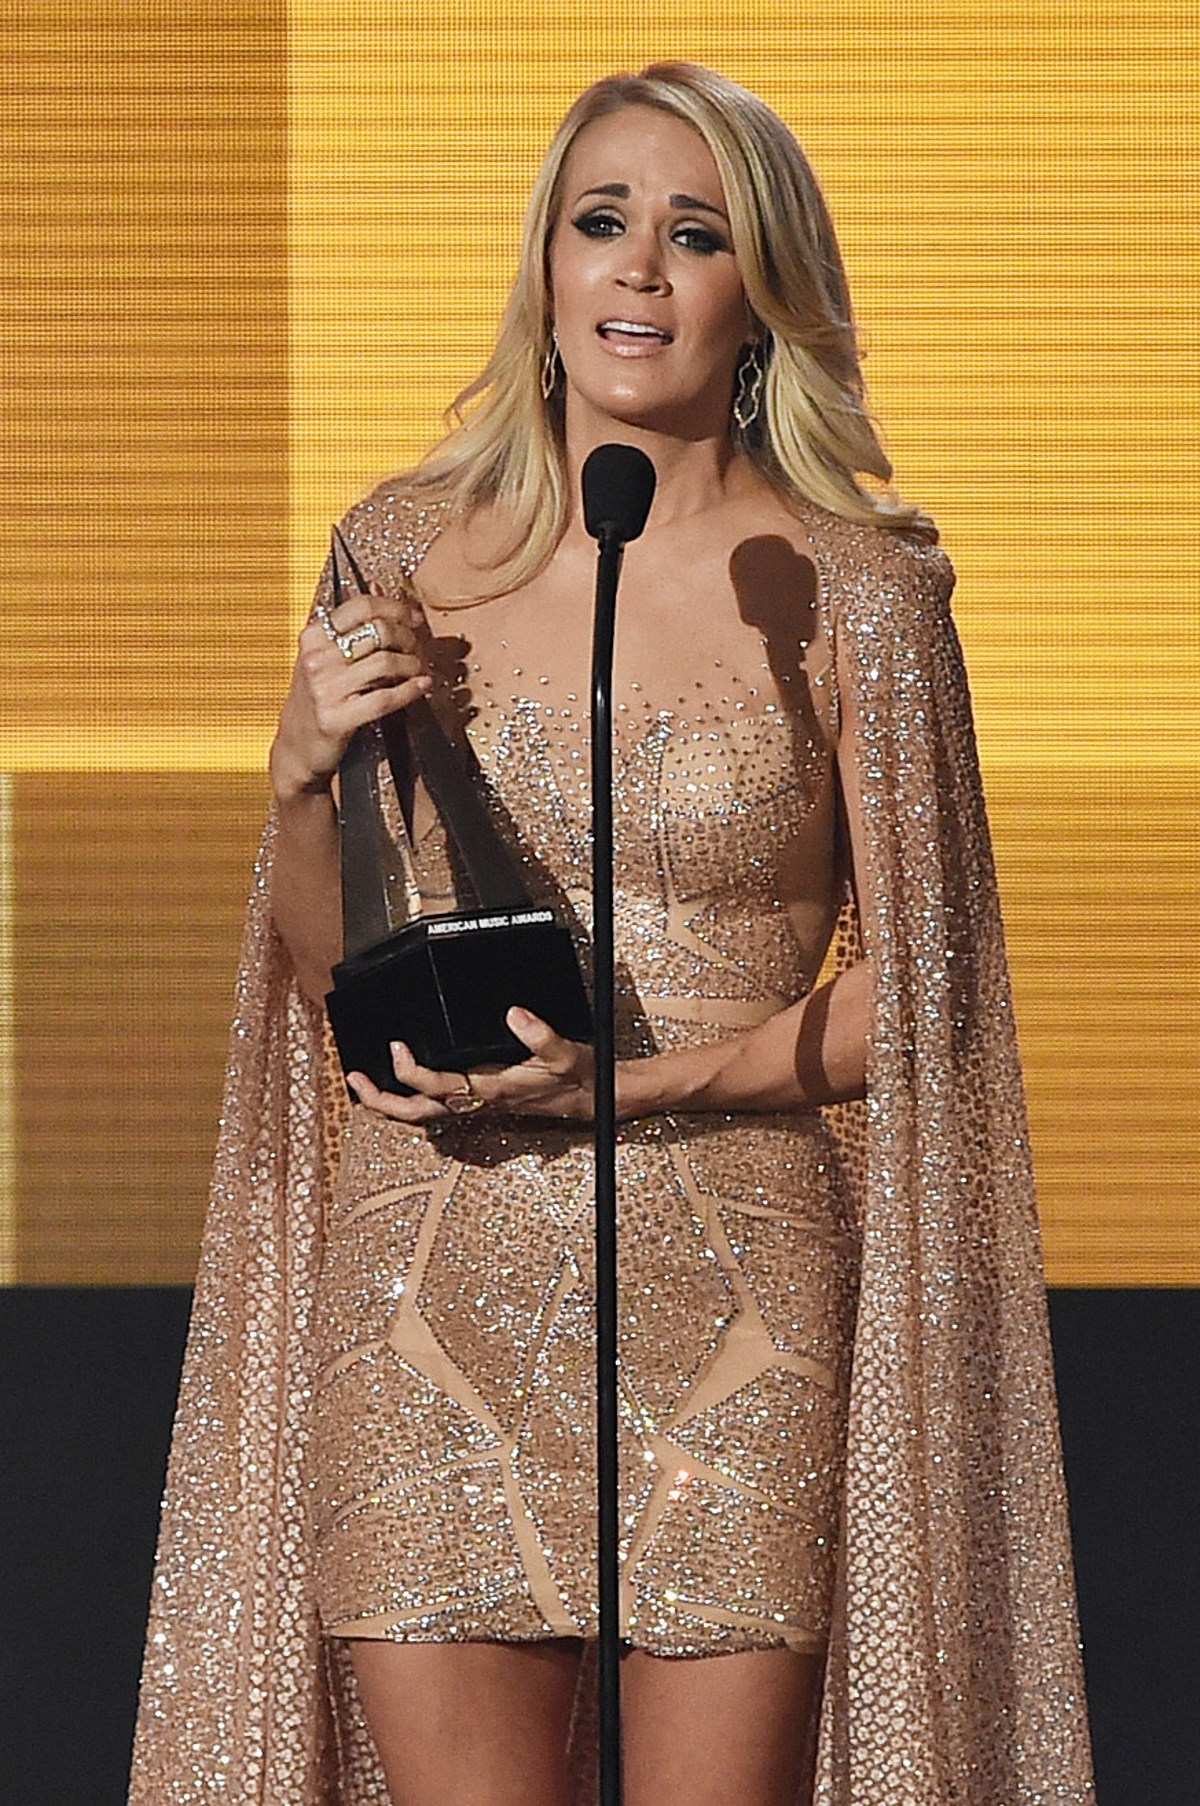 Carrie Underwood Wins Favorite Female Artist Country at AMAs